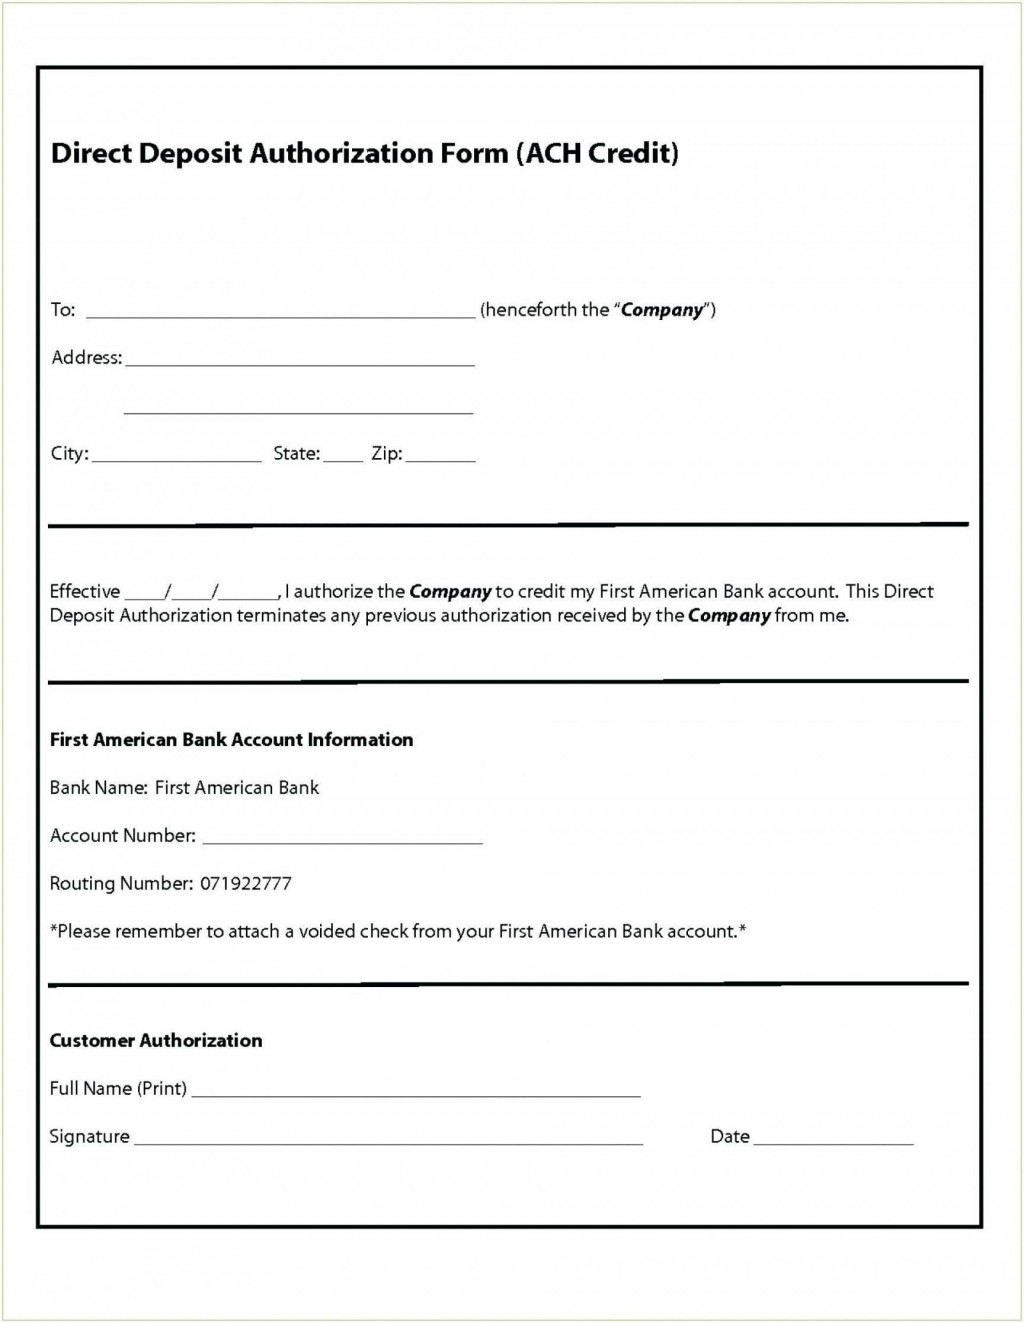 003 Fascinating Direct Deposit Agreement Authorization Form Template Sample Large